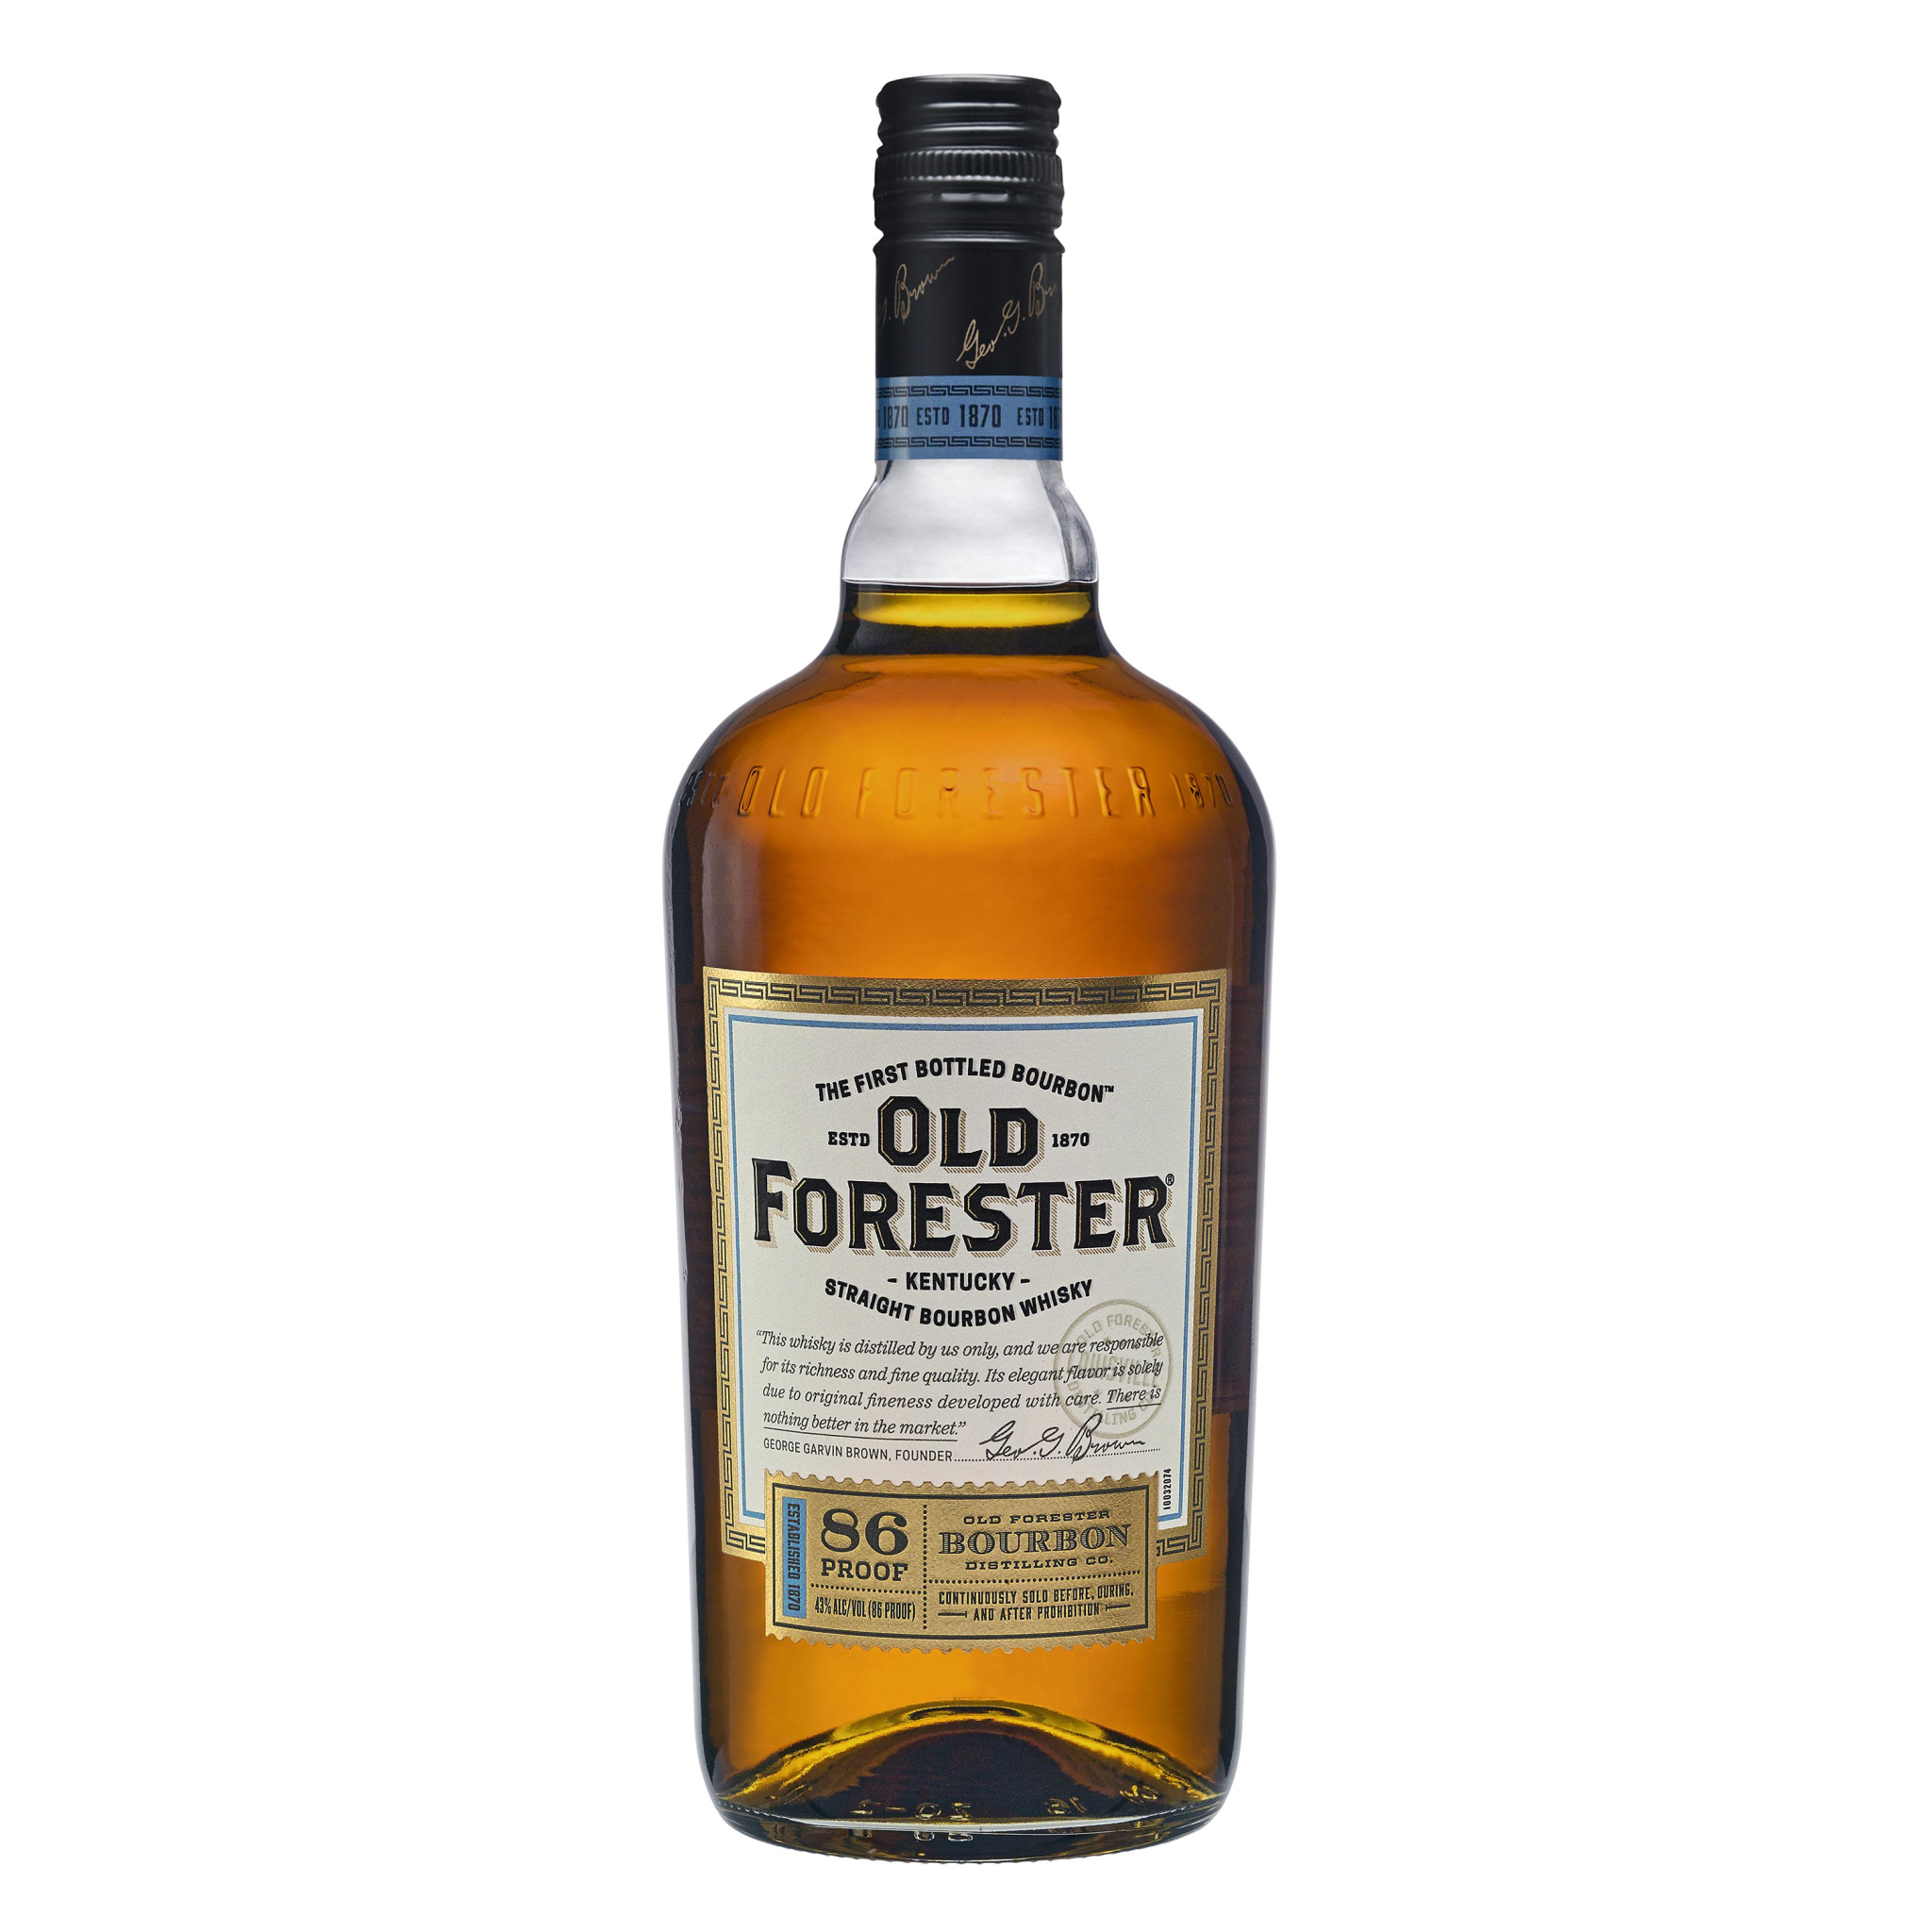 Old Forester Straight Bourbon Whiskey ABV 43% 750 ML